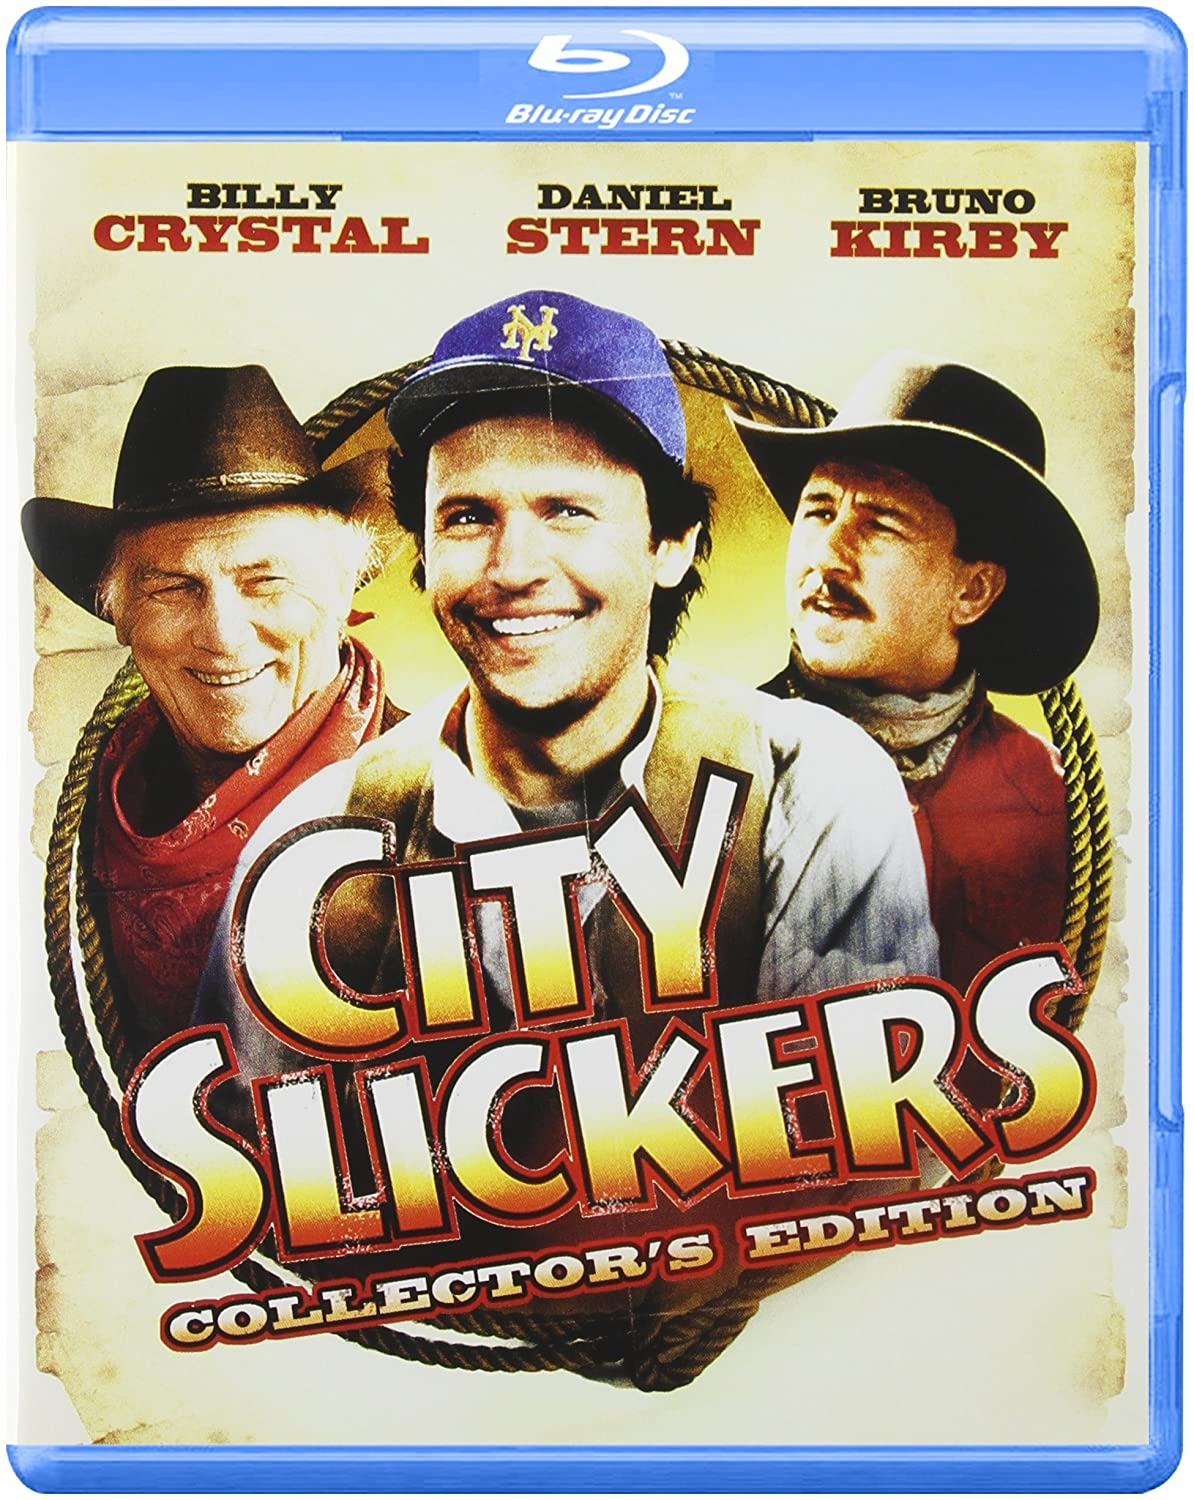 Amazon Com City Slickers Collector S Edition Blu Ray Crystal Stern Kirby Palance Movies Tv